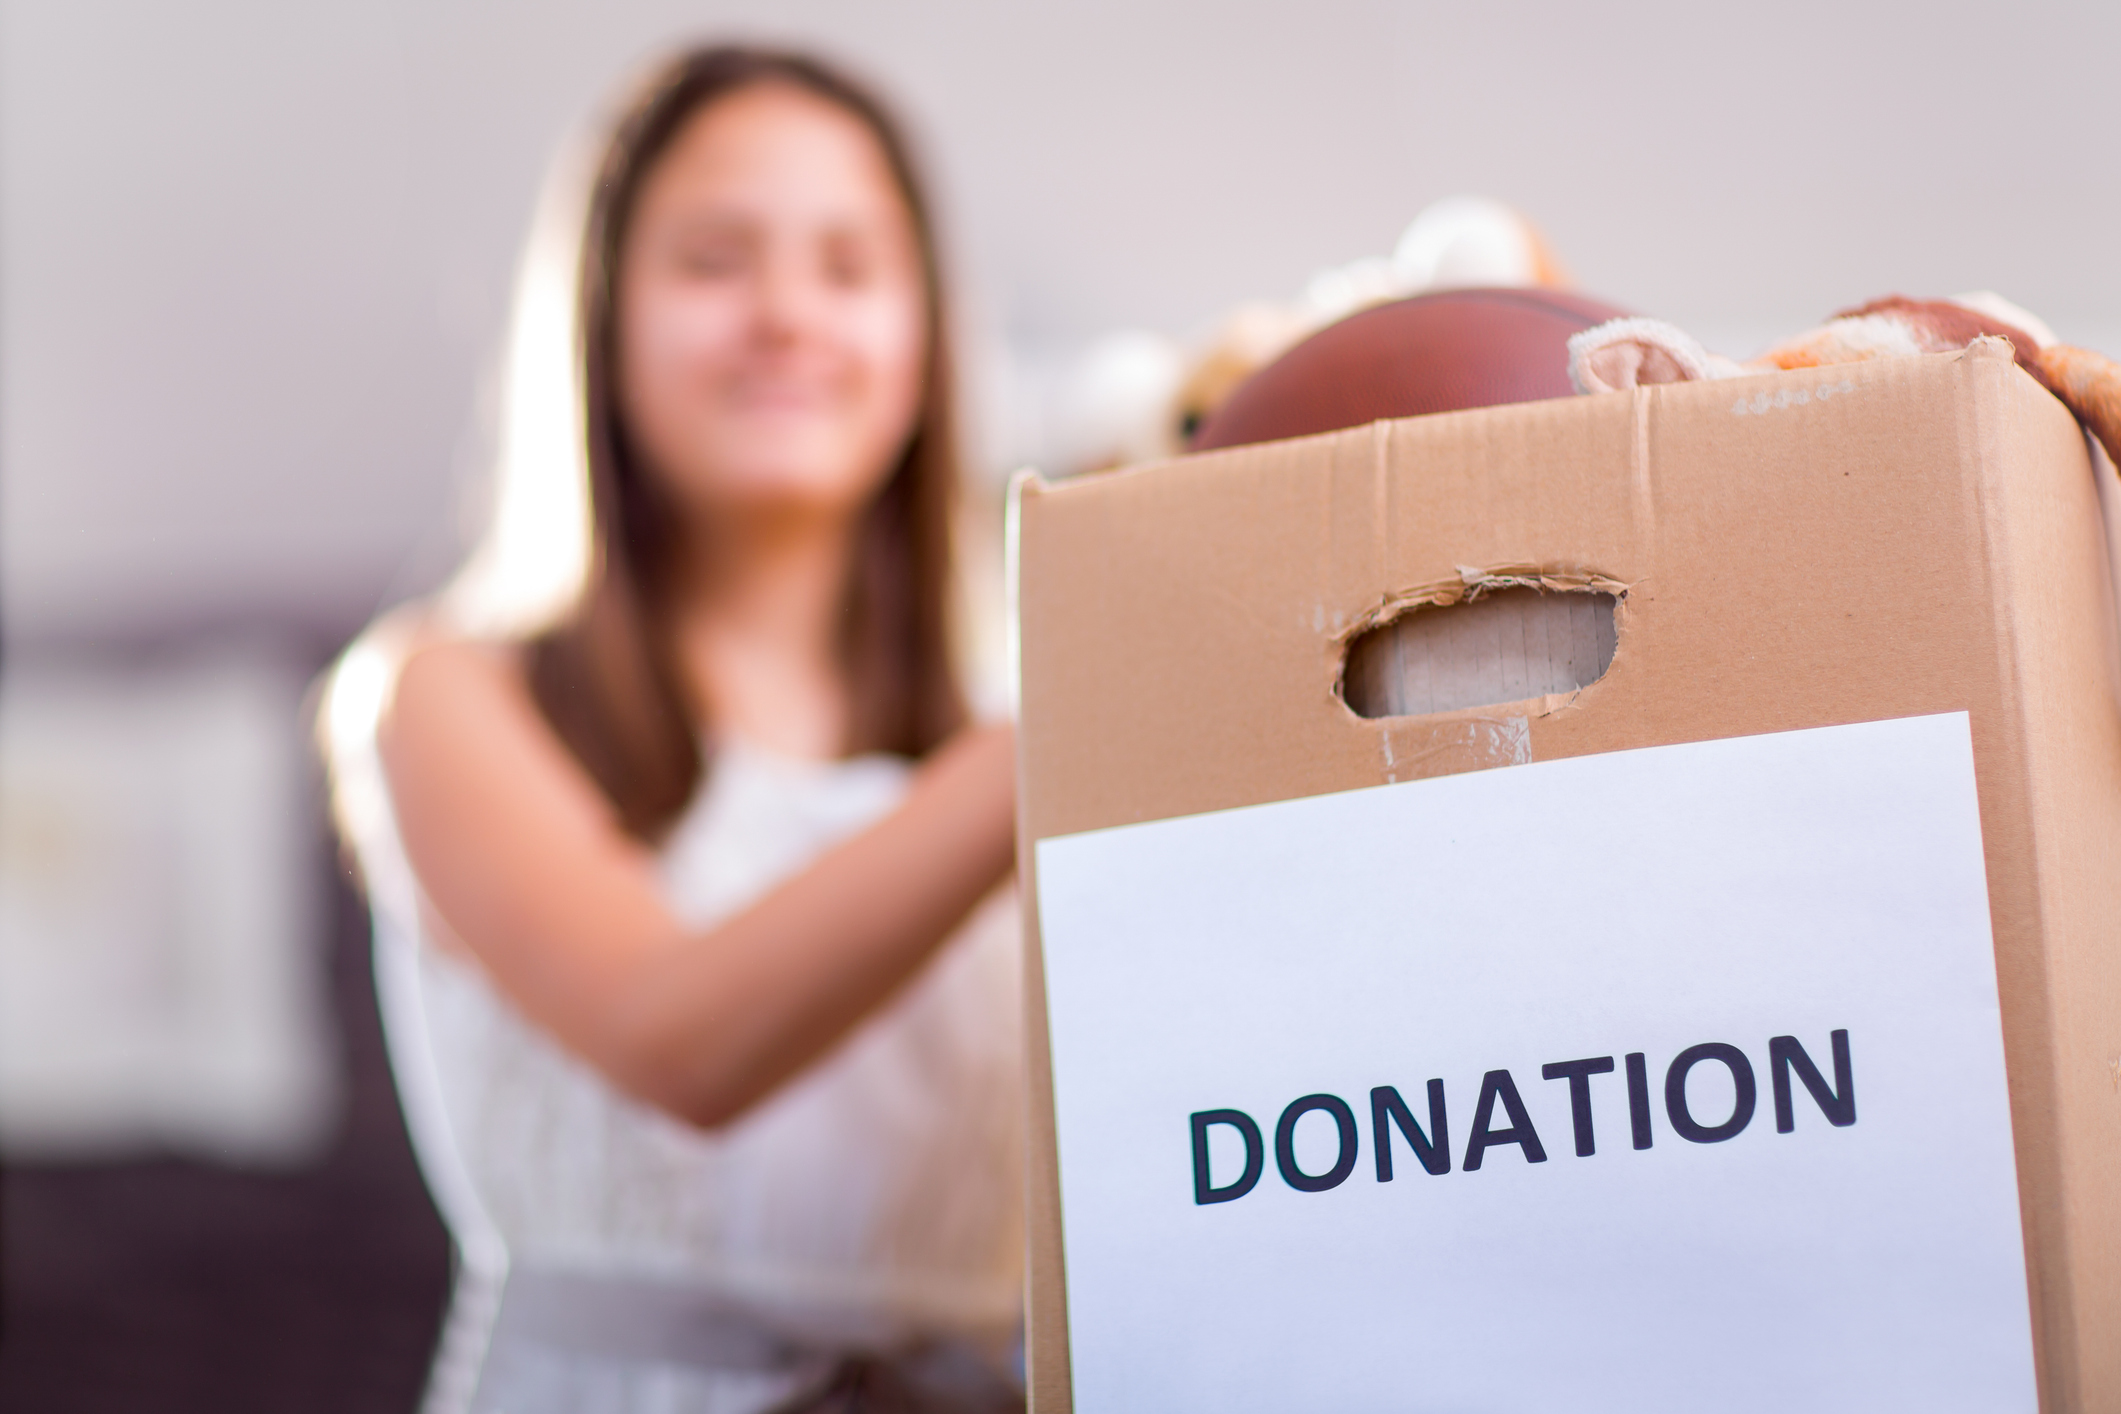 Box of items to donate